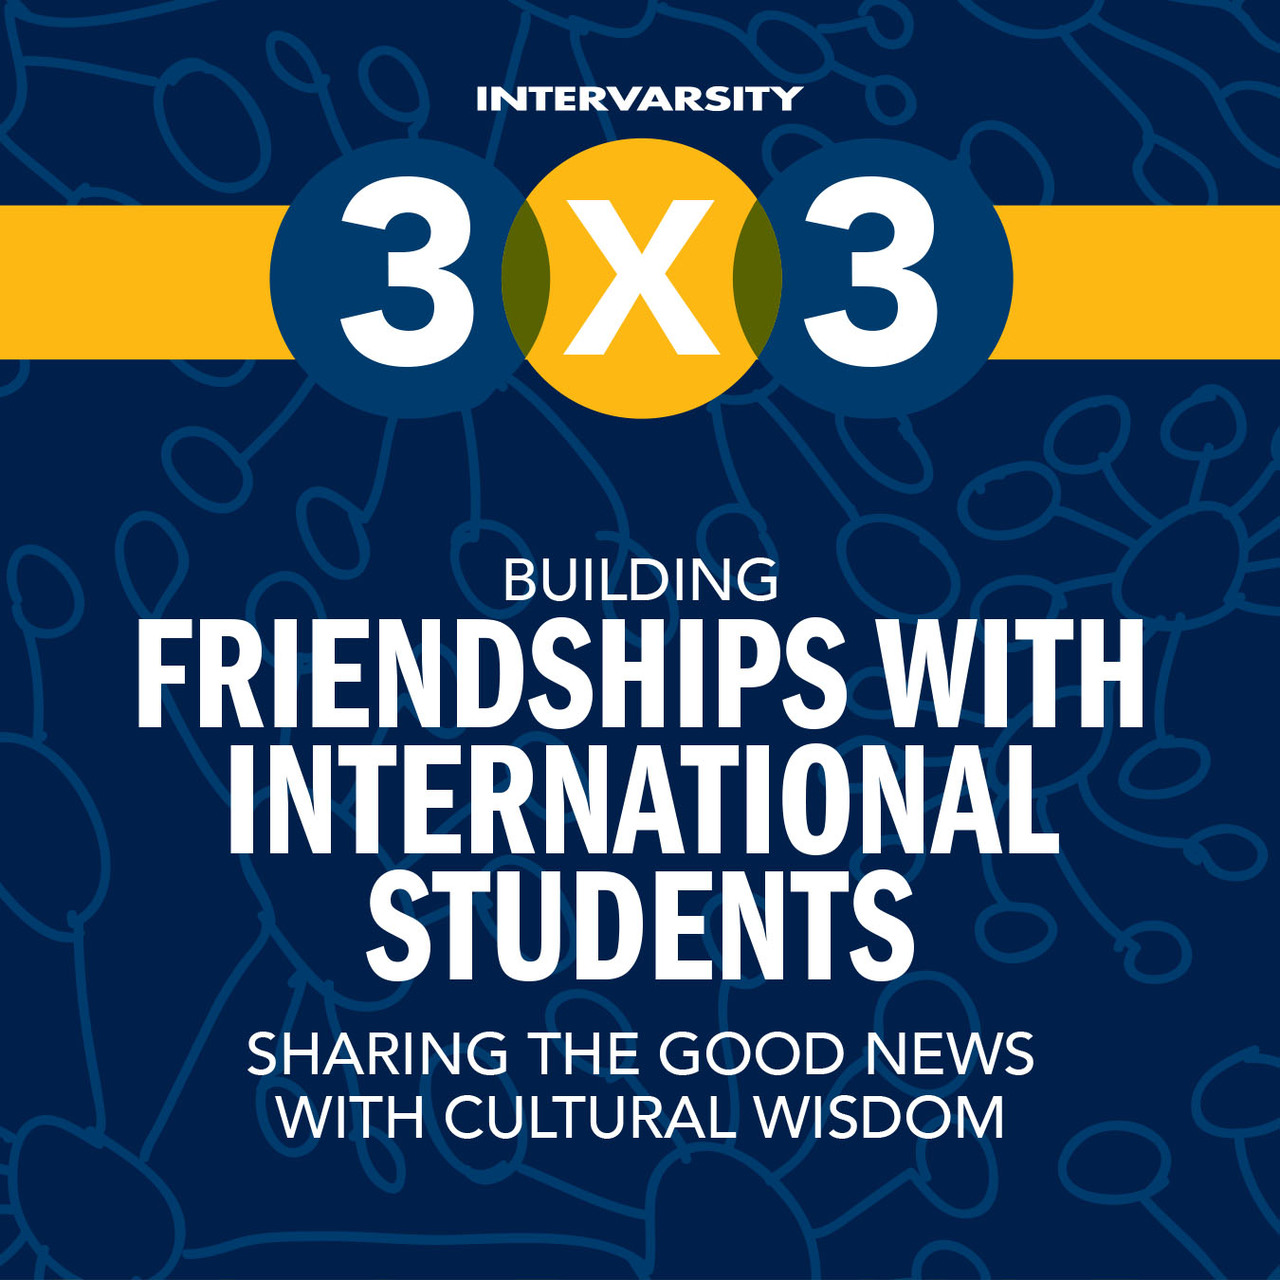 Building Friendships with International Students 3x3 Quick Guide (bundle of 10)